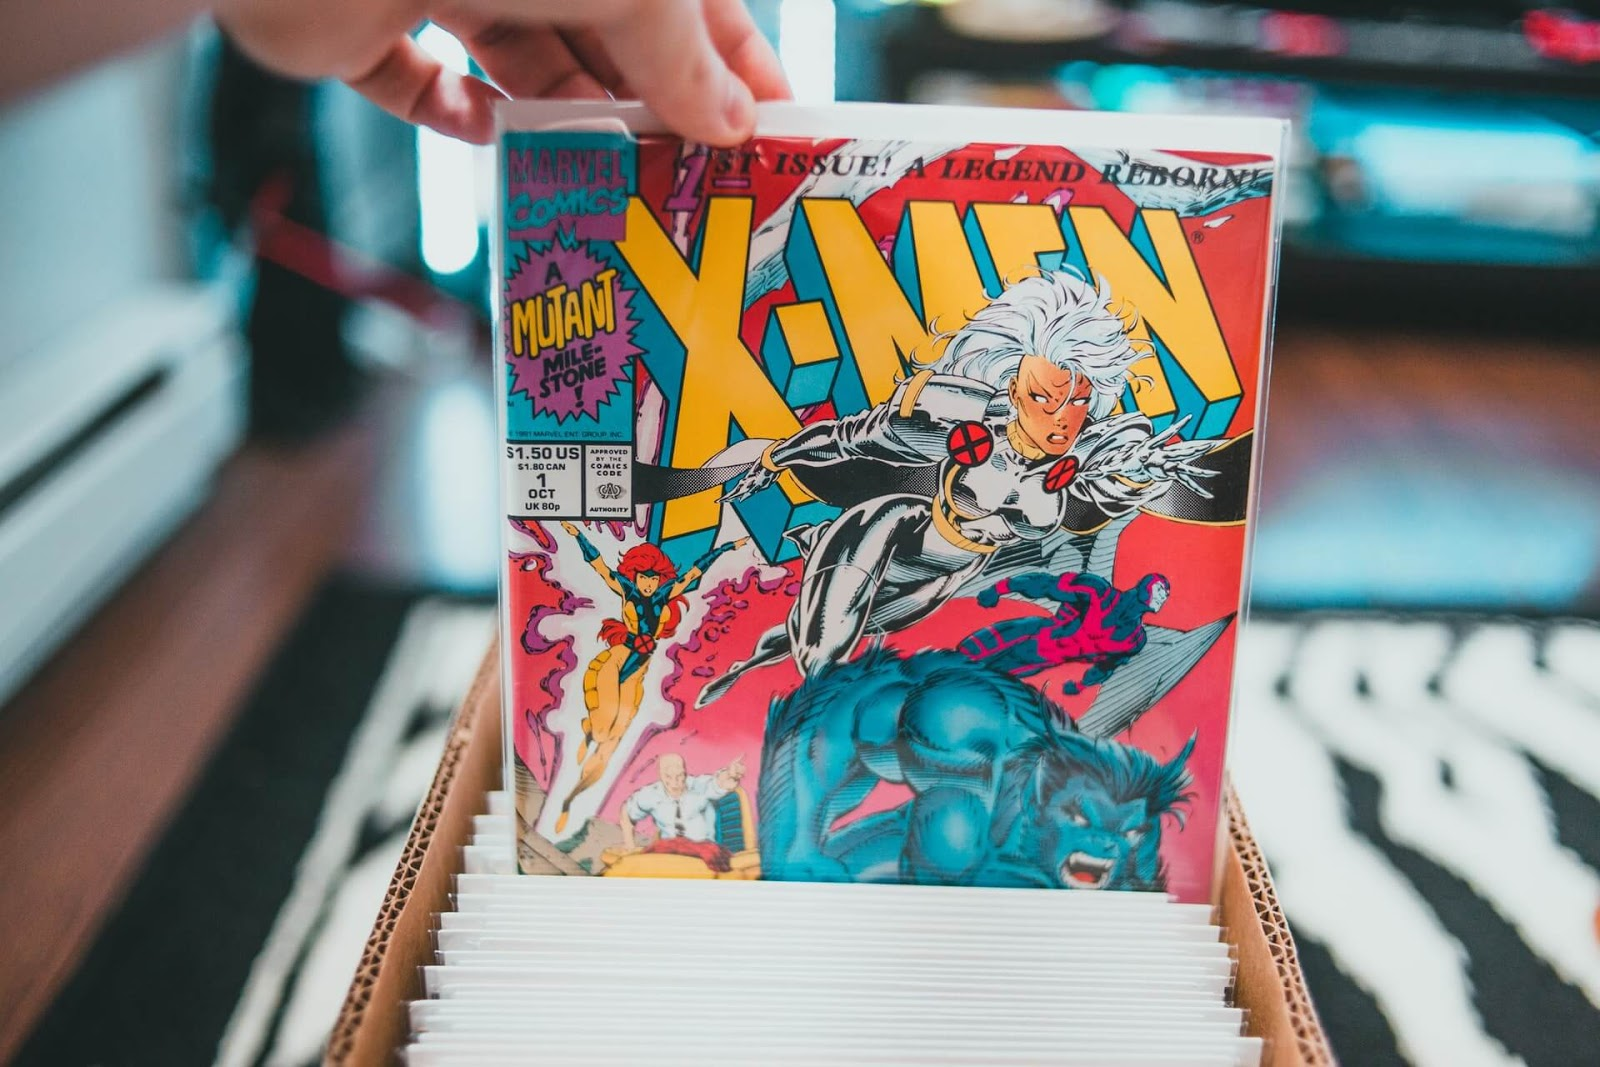 A person holds an x-men comic in their hand with Storm on the front.